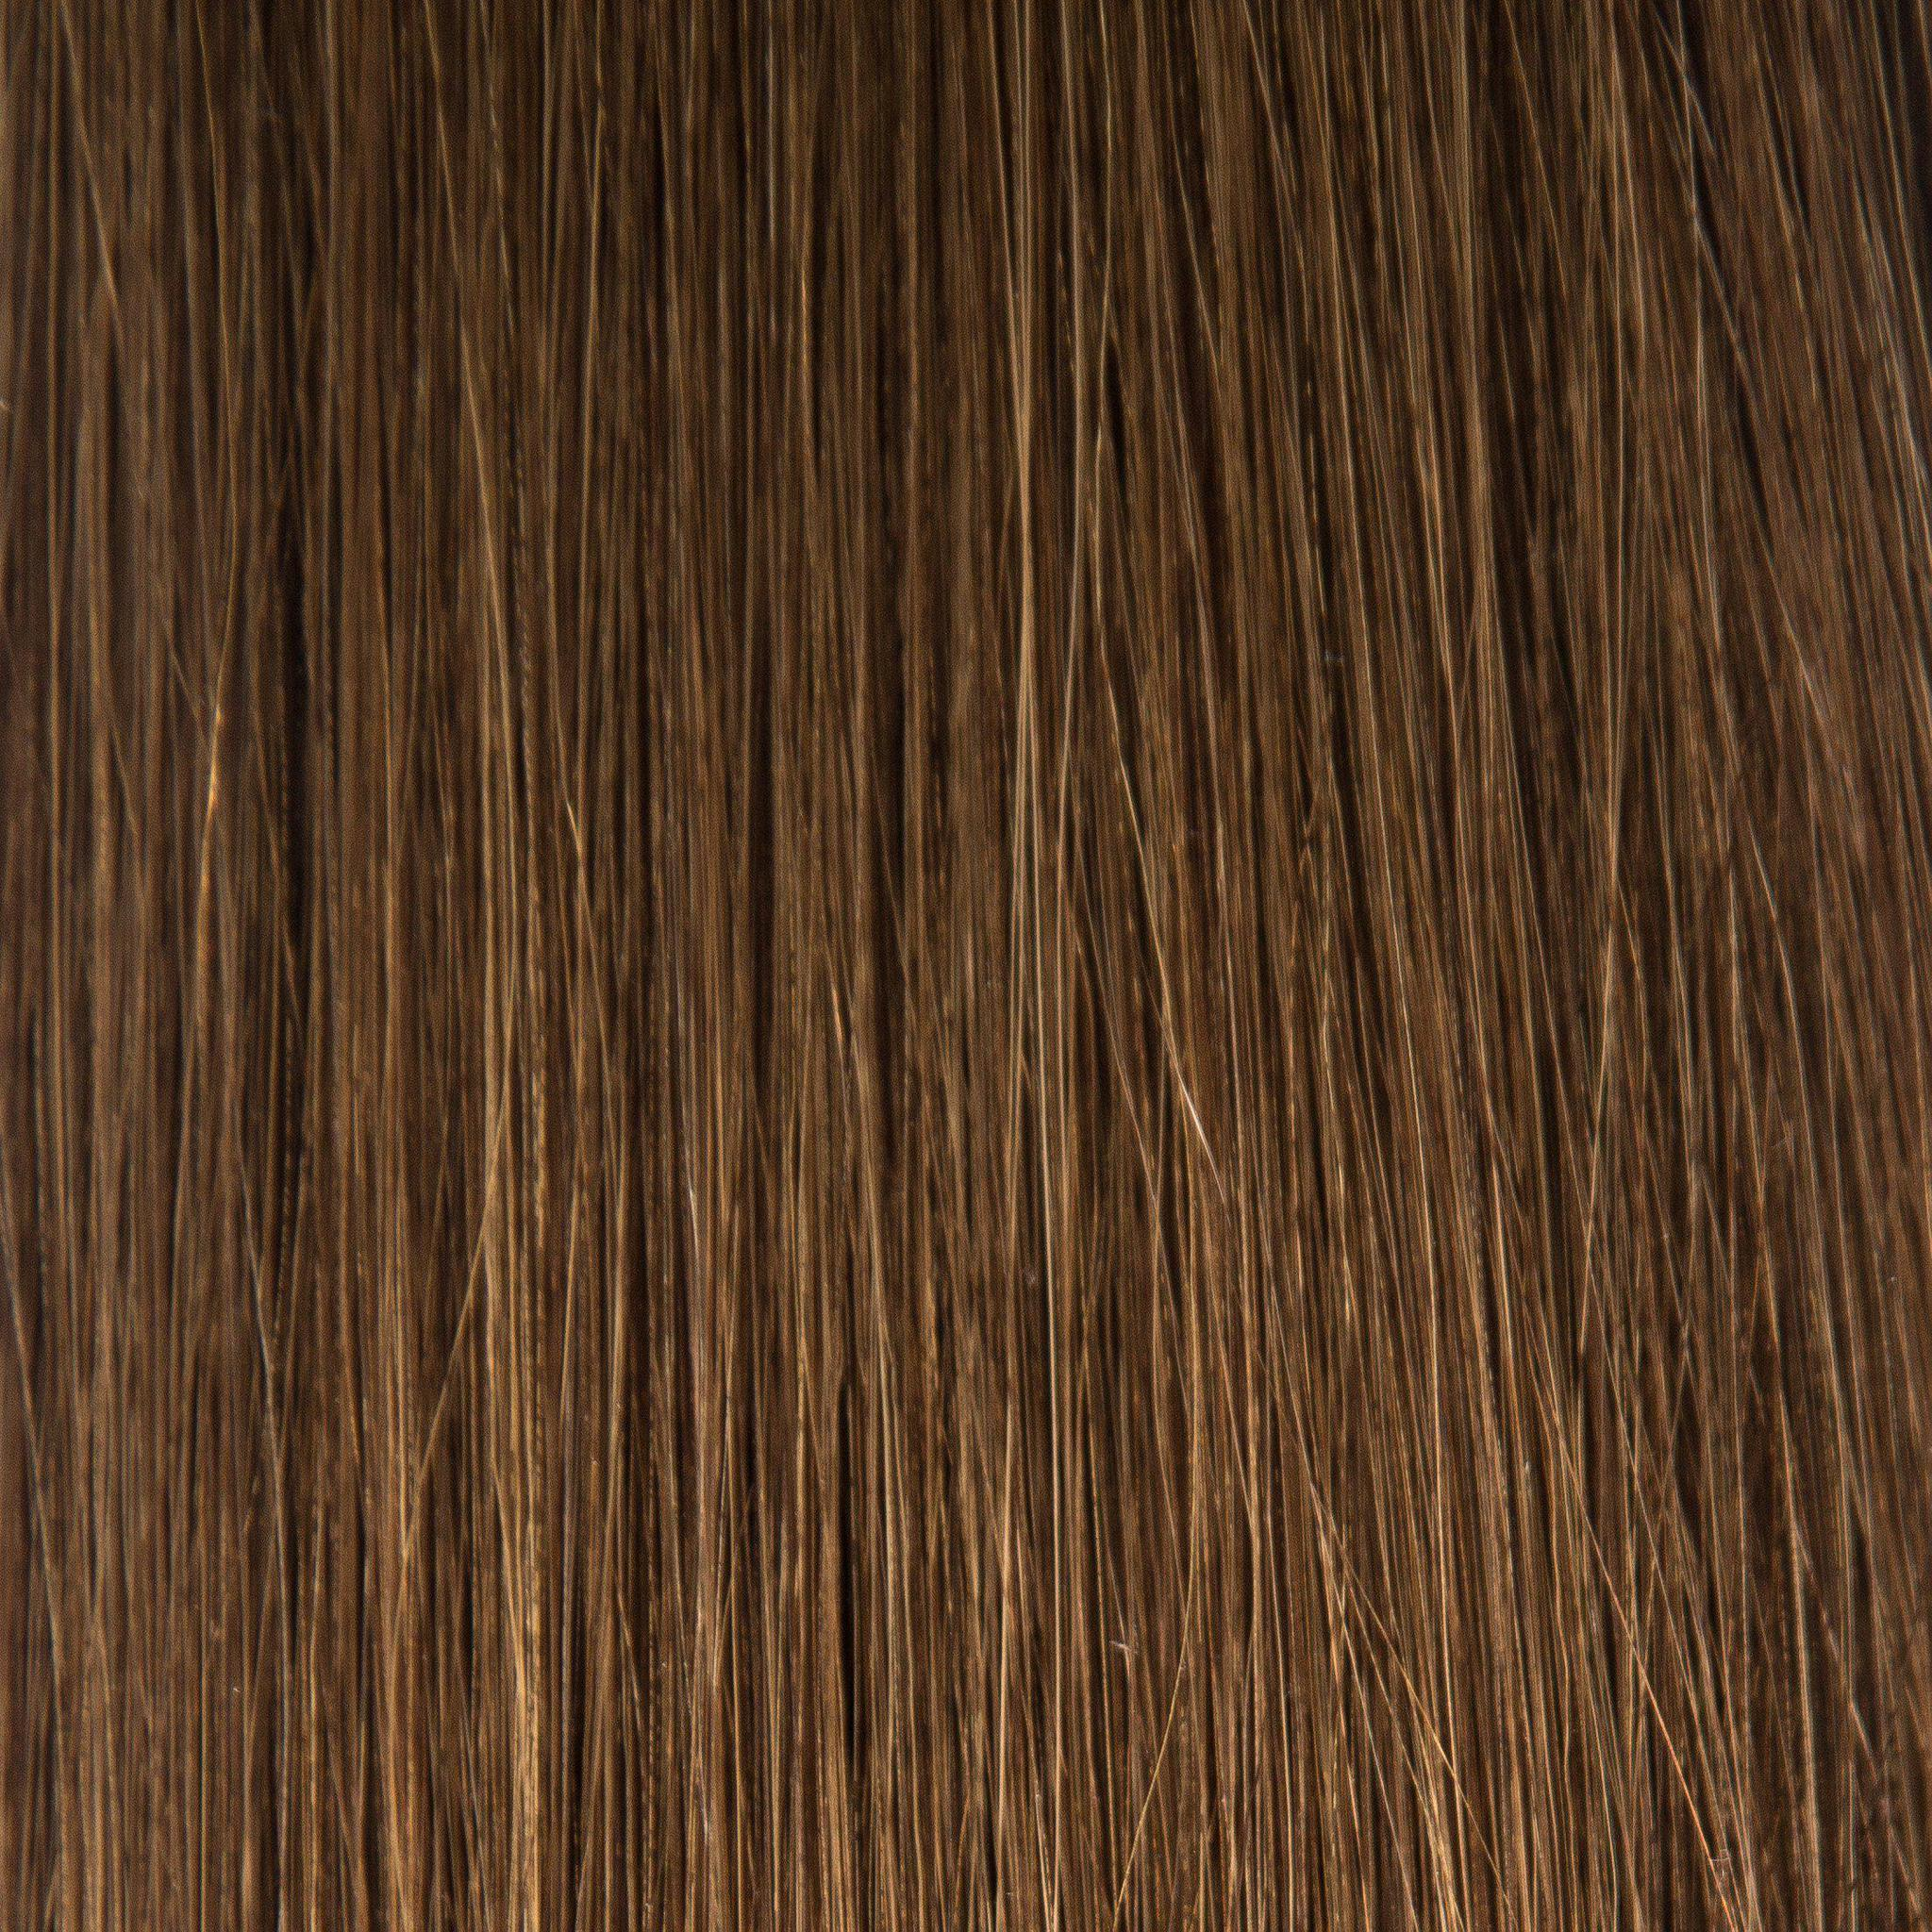 Waved By Laced Hair - Waved By Laced Hair Hand Tied Weft Extensions #4